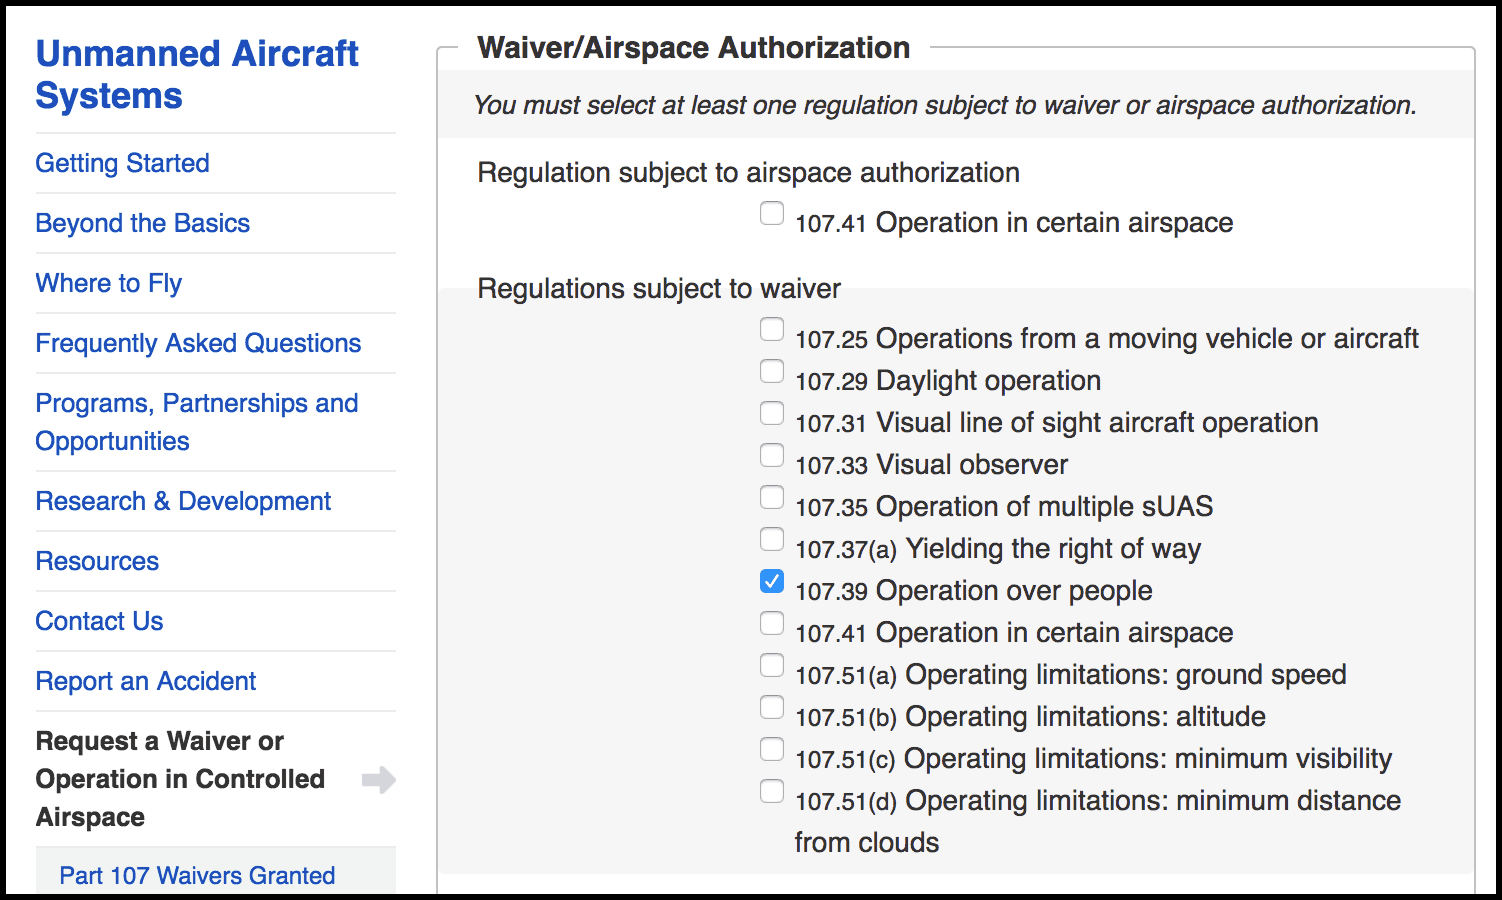 How to request a waiver for flying over people drone pilot how to request a waiver for flying over people drone pilot ground school xflitez Image collections